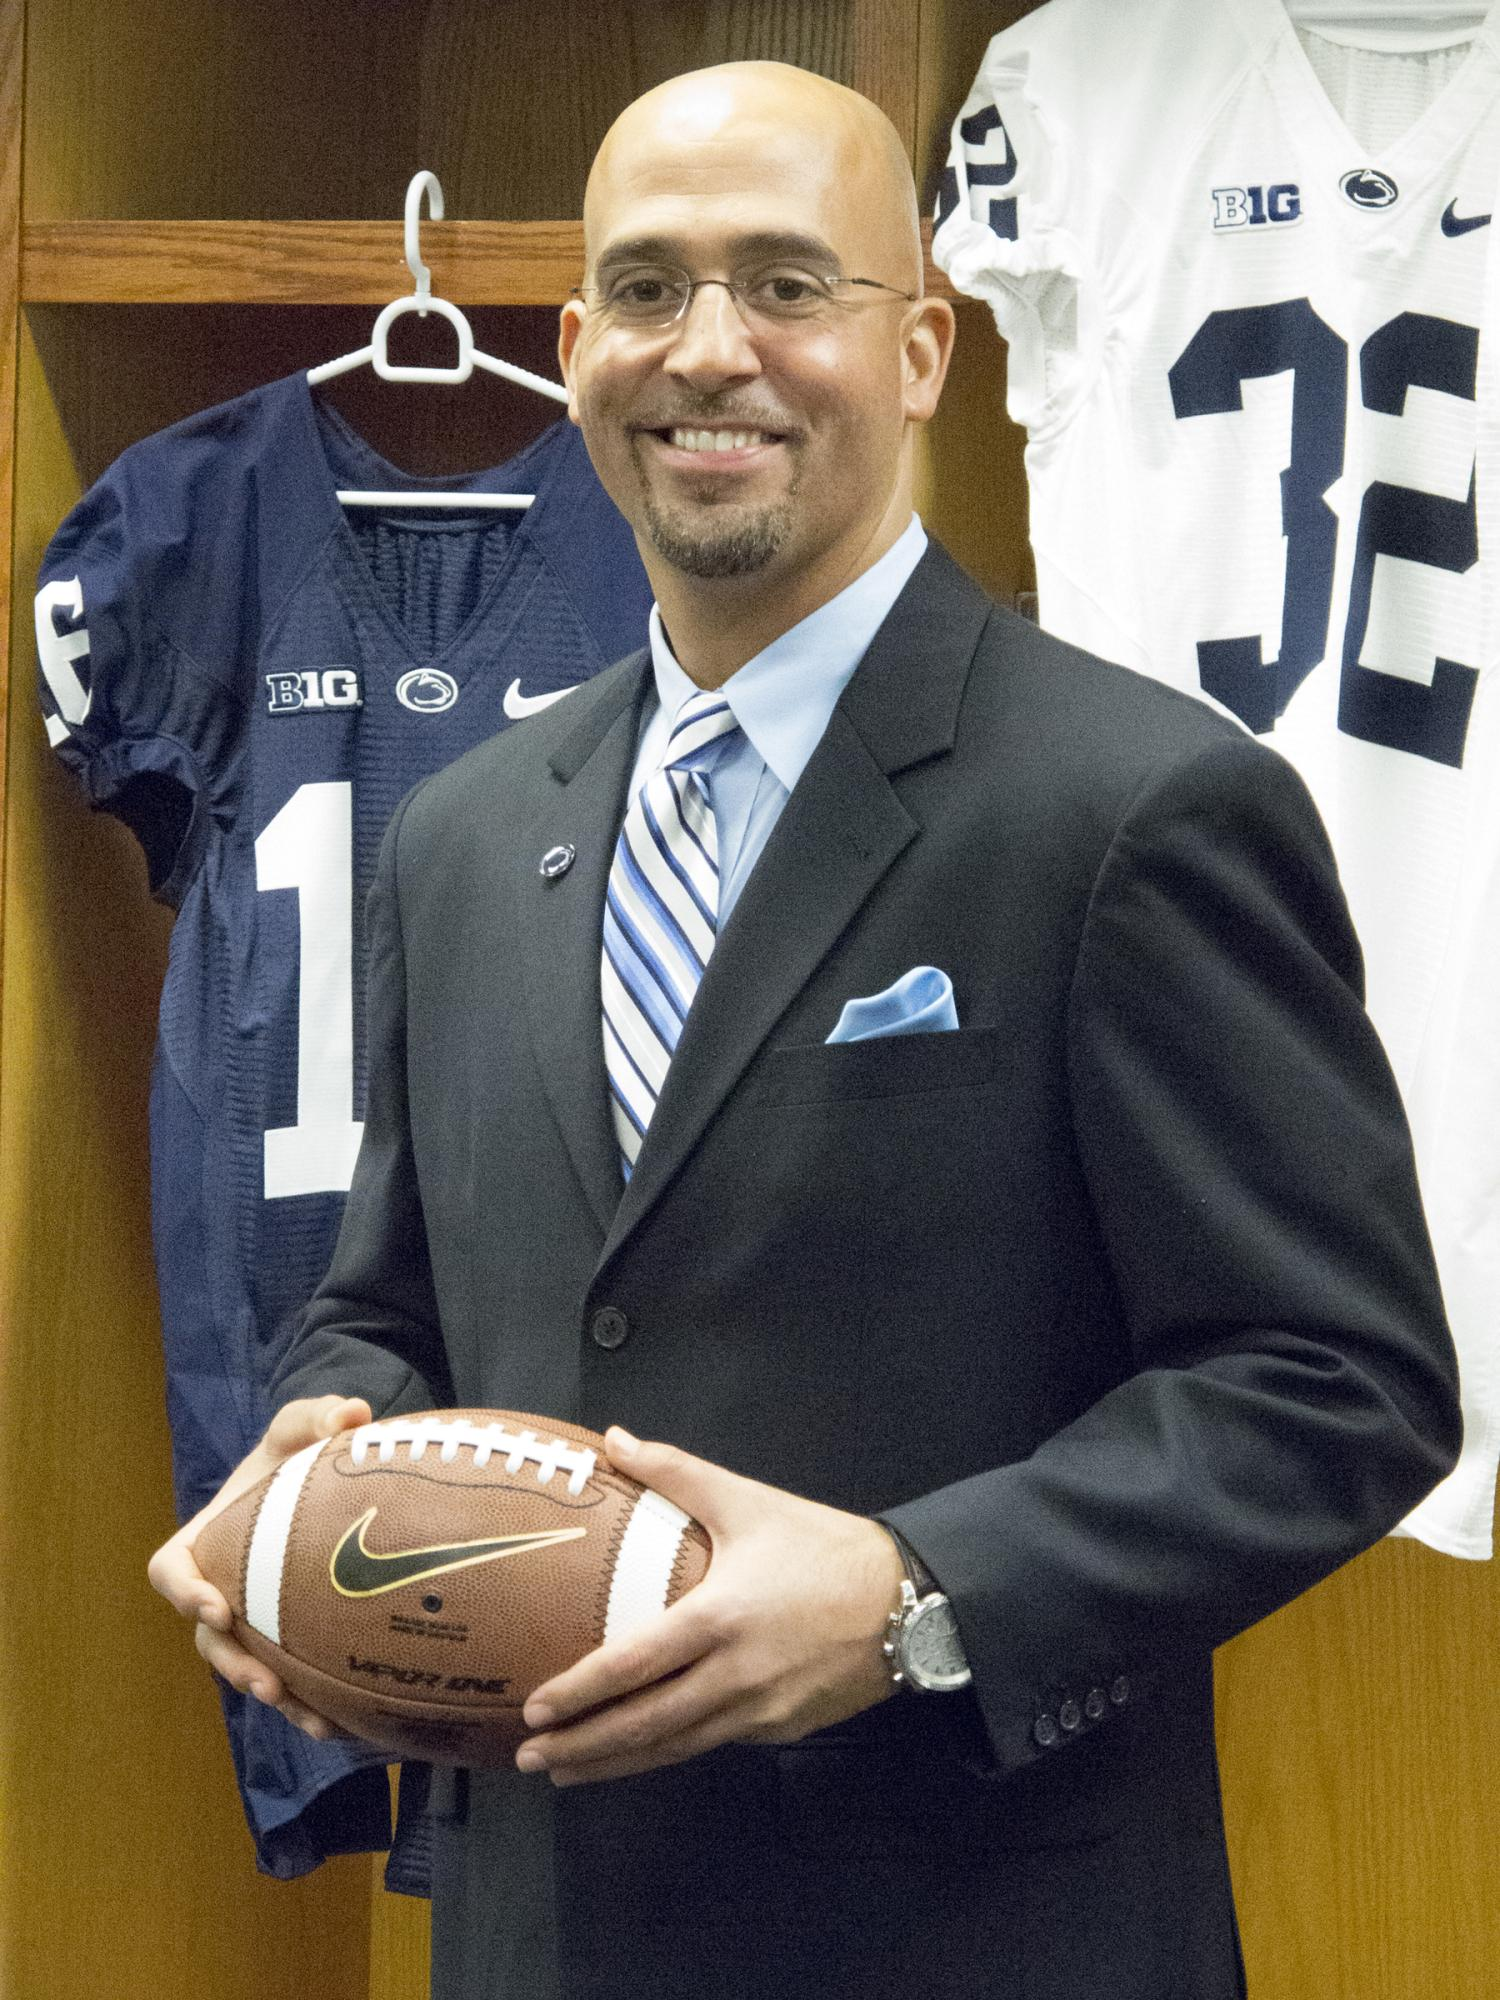 Franklin-first official portrait at Penn State